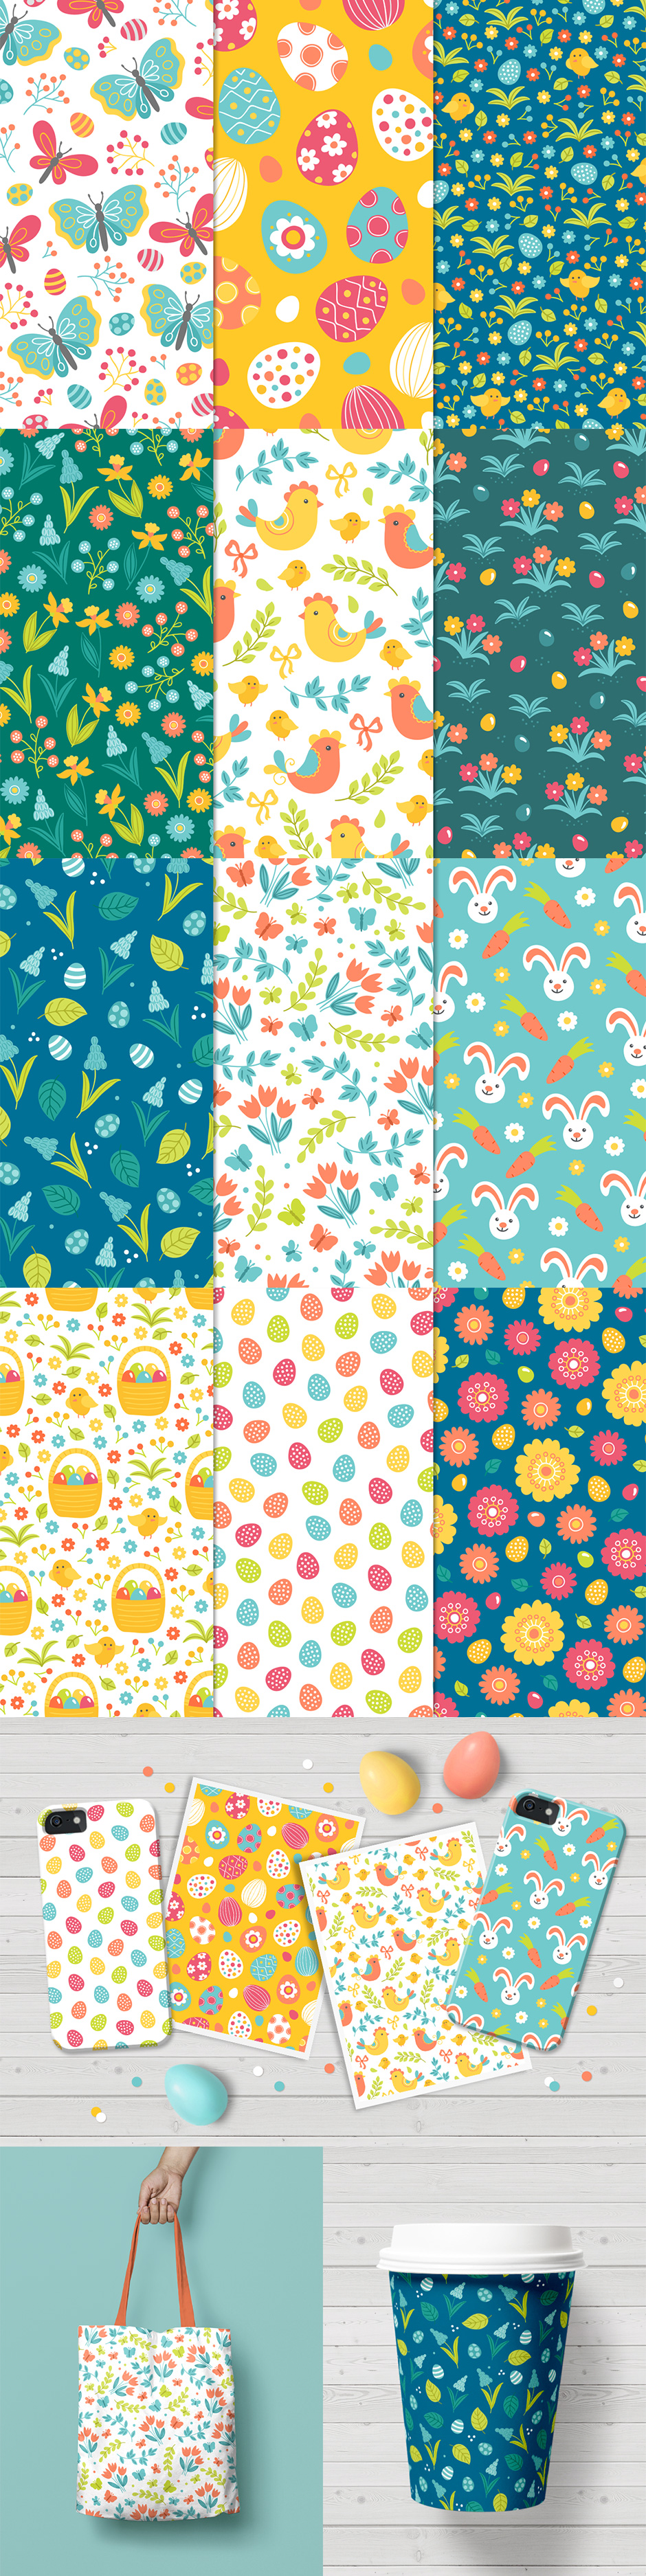 12 Seamless Easter Patterns